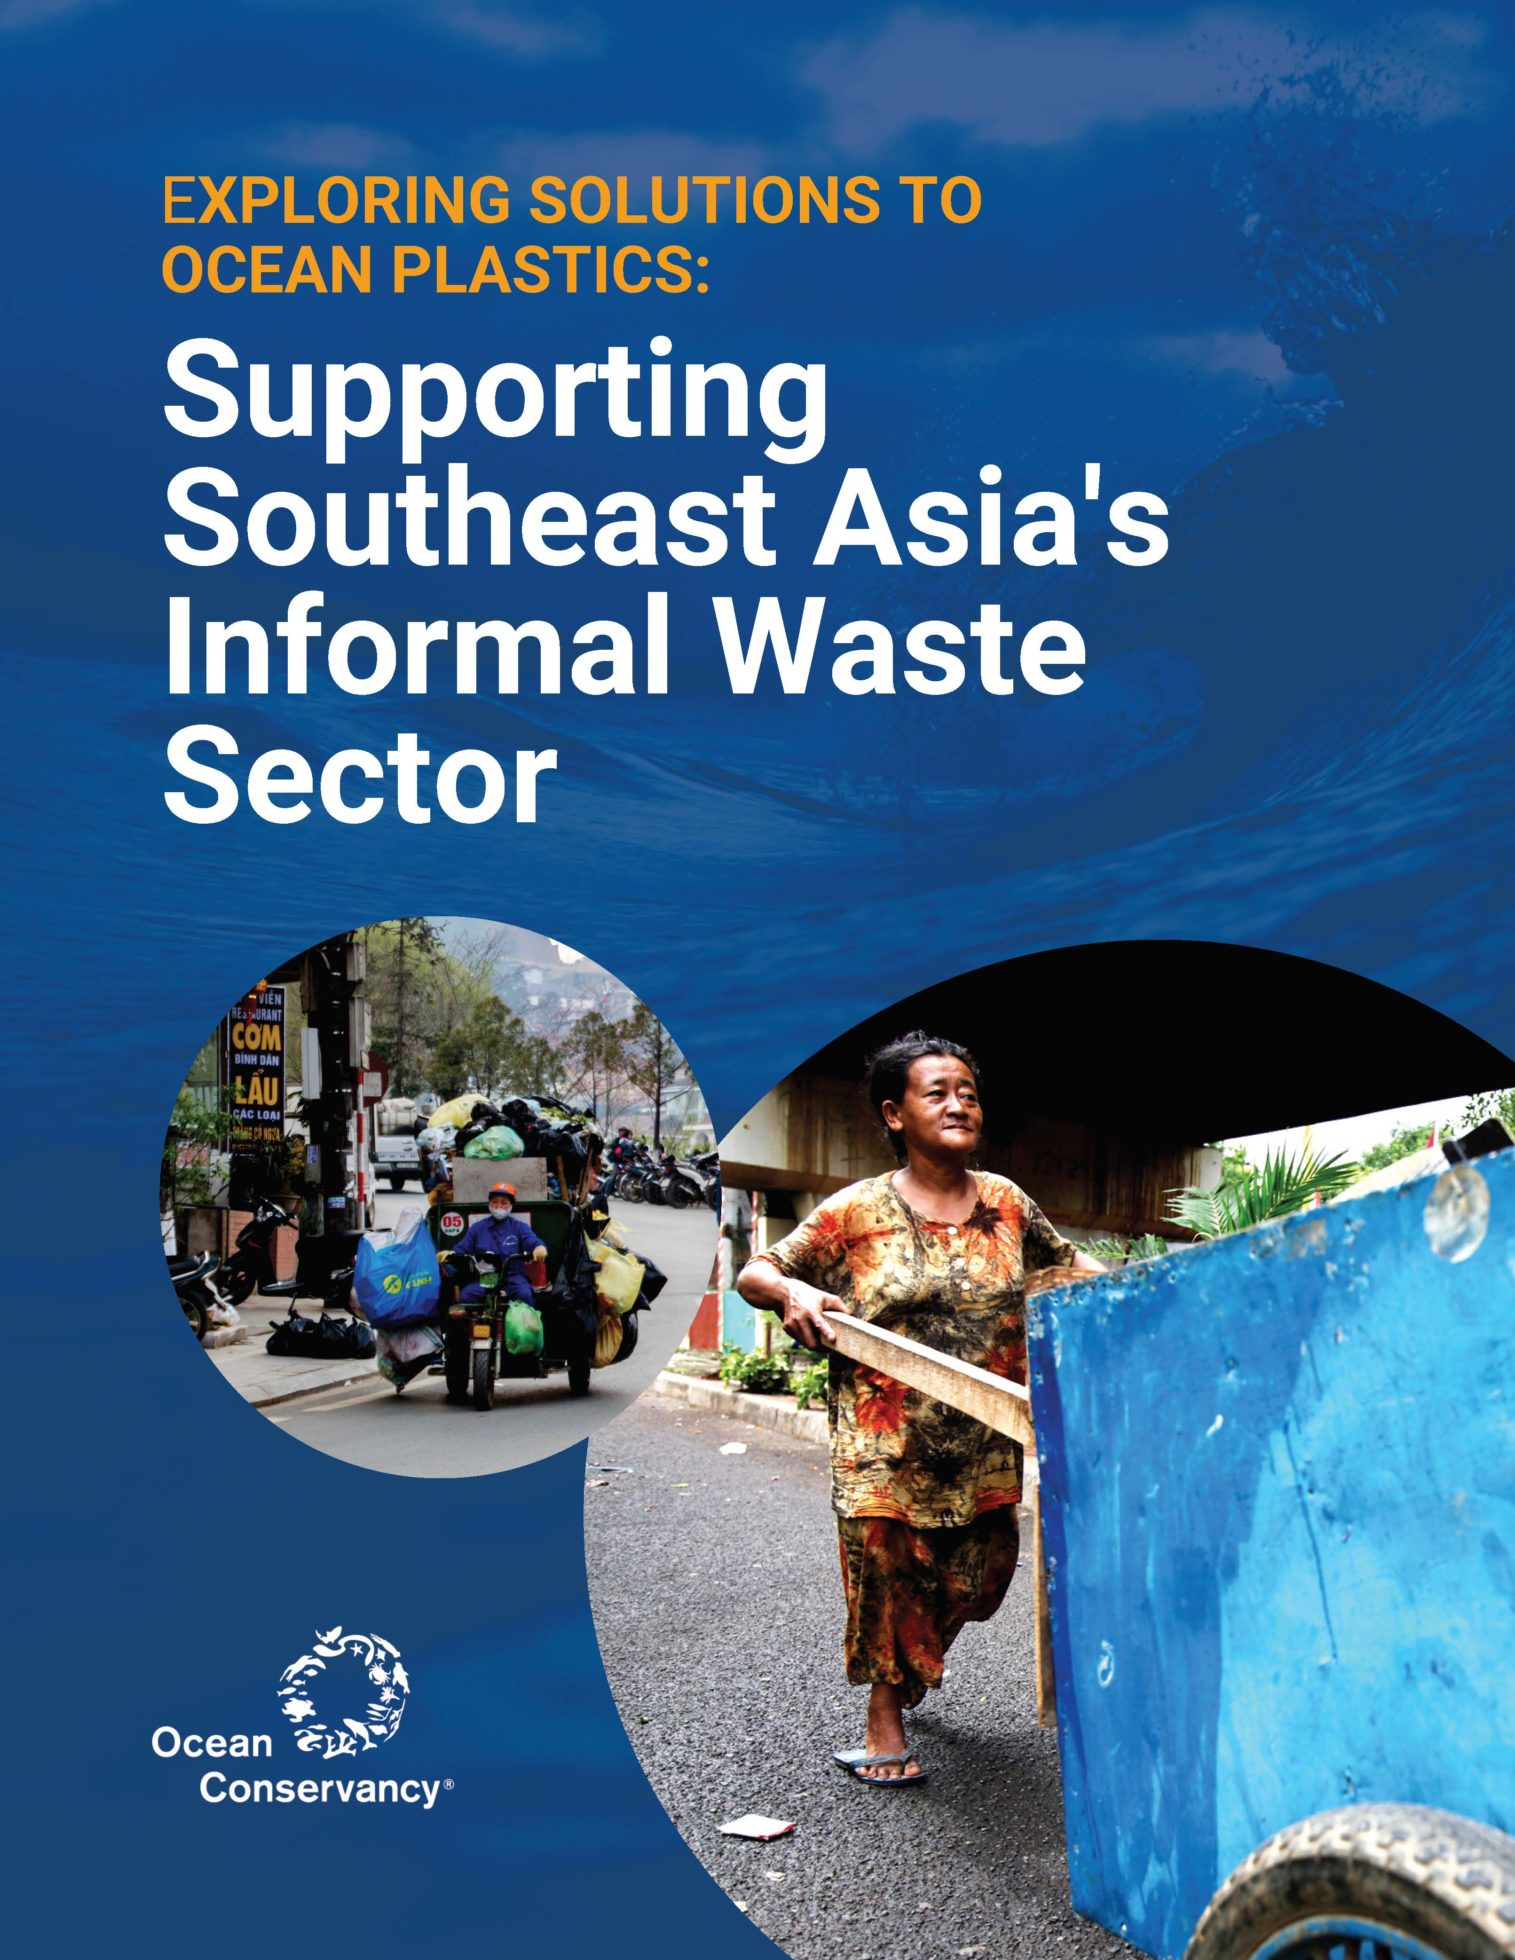 Exploring Solutions to Ocean Plastics: Supporting Southeast Asia's Informal Waste Sector